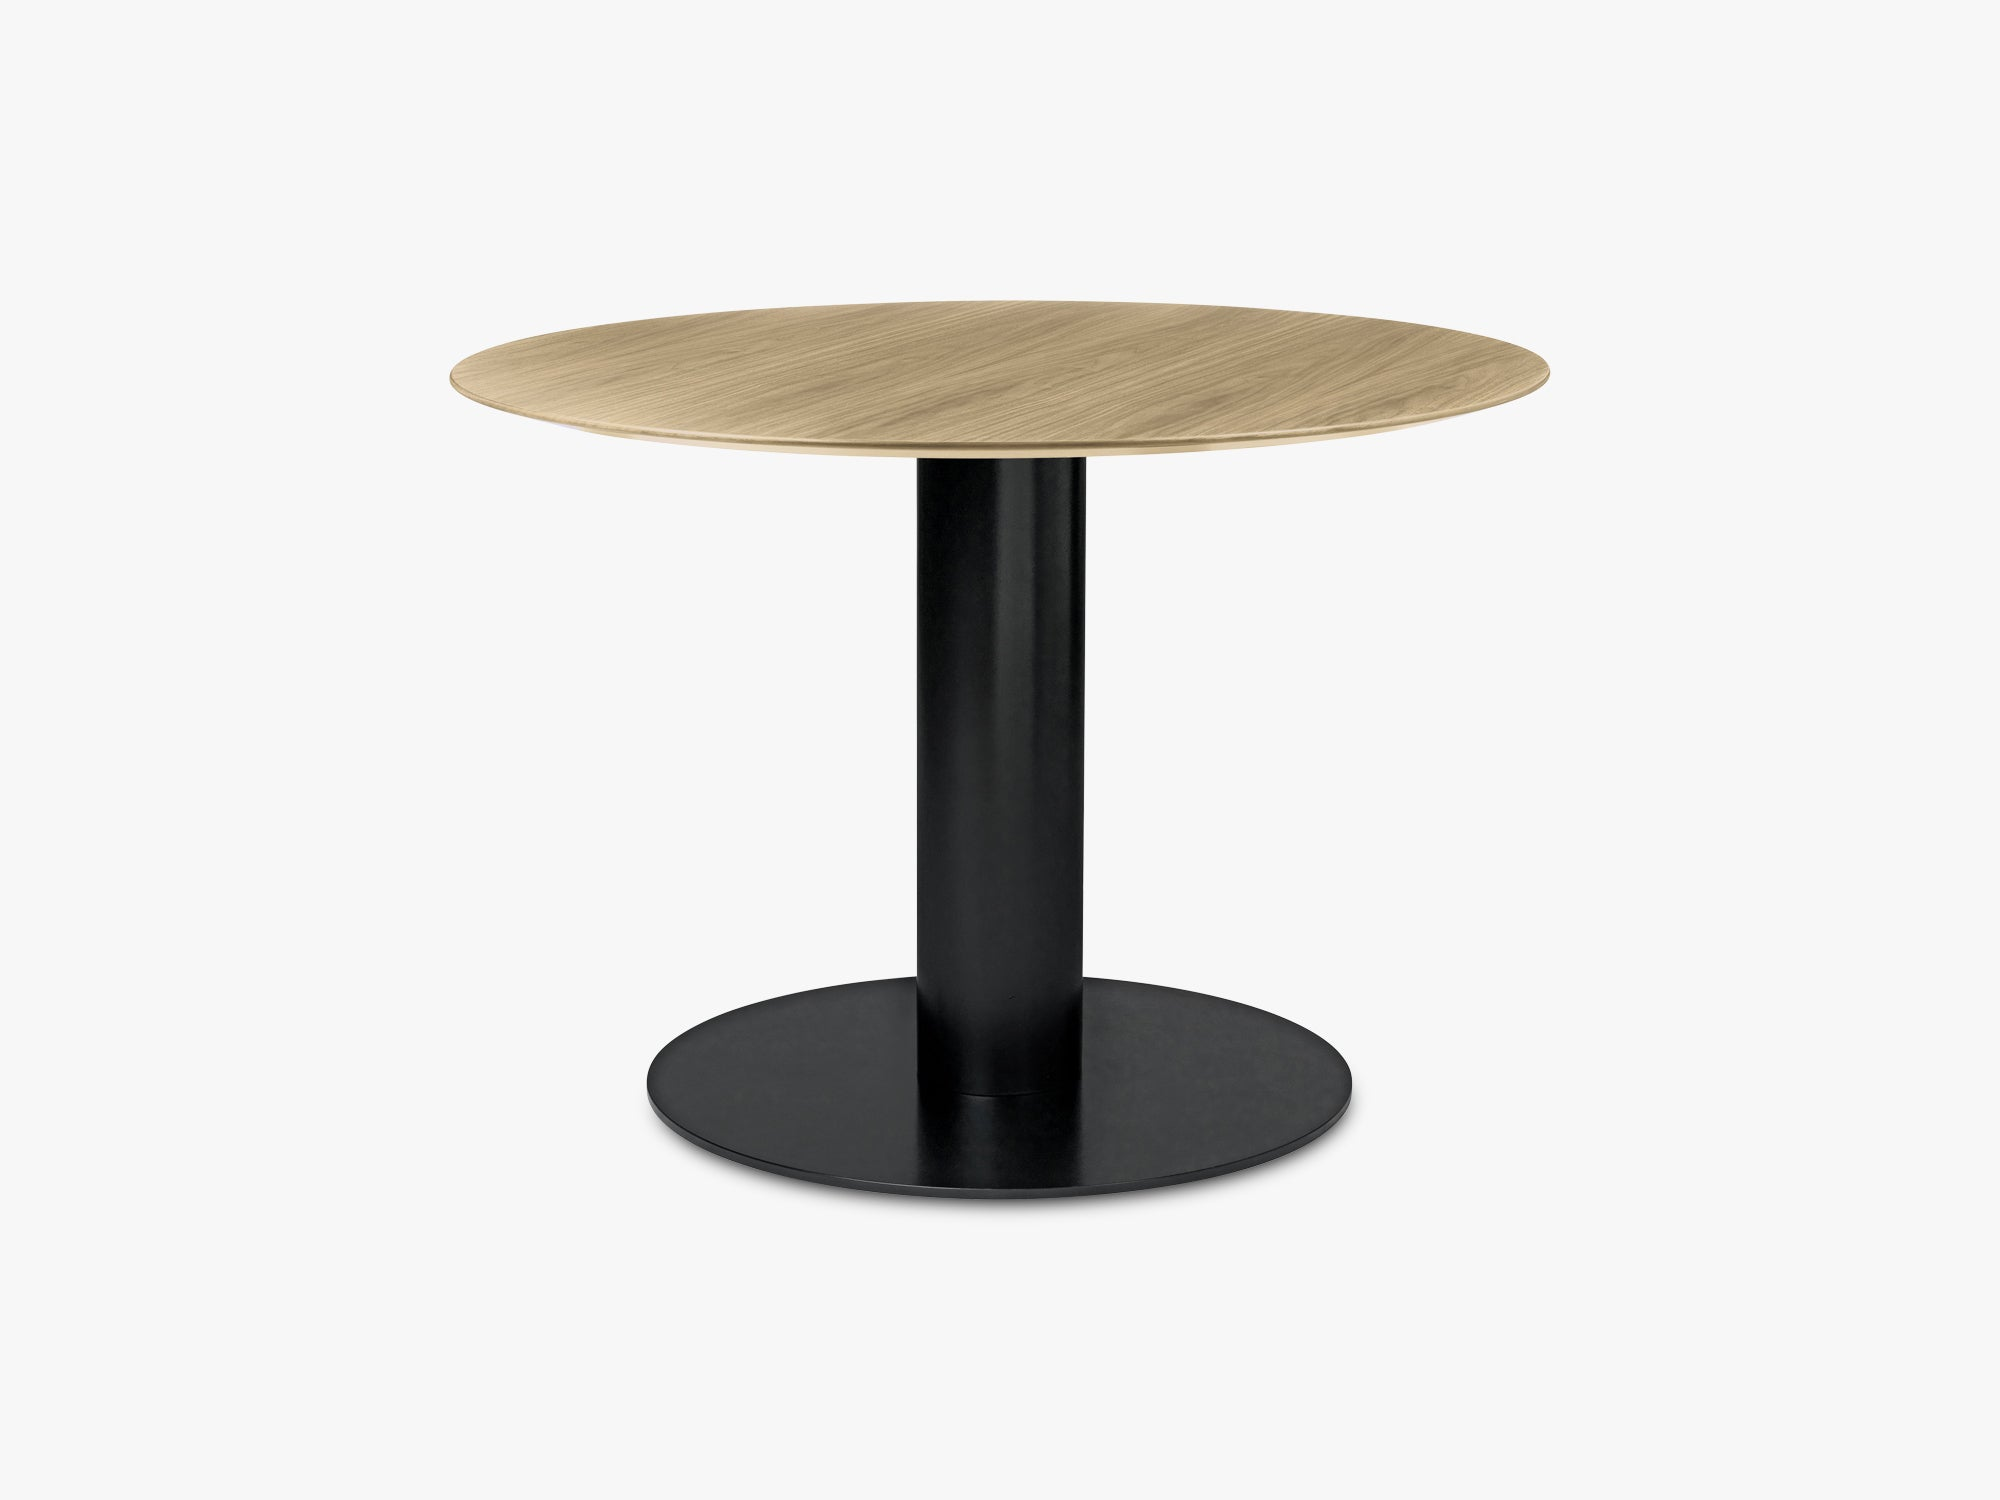 GUBI 2.0 Dining Table - Round - Ø110 - Black base, Oak top fra GUBI